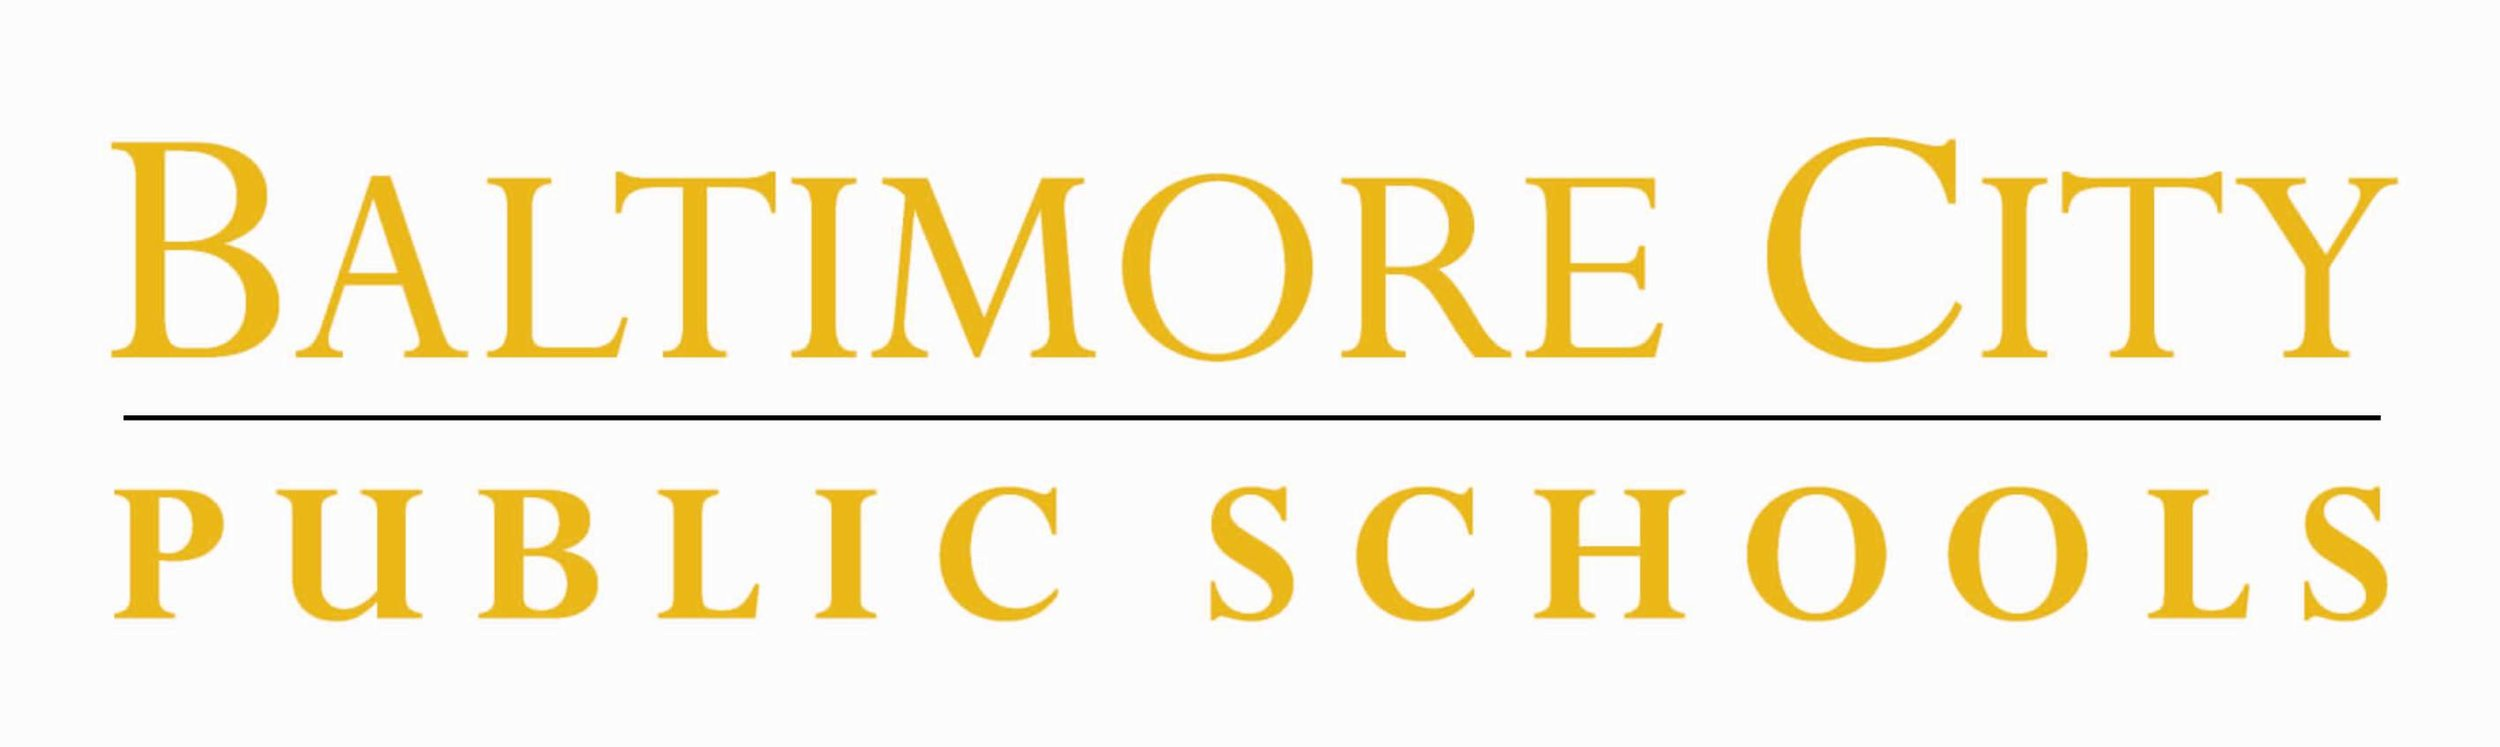 Baltimore_City_Public_Schools_logo.jpg